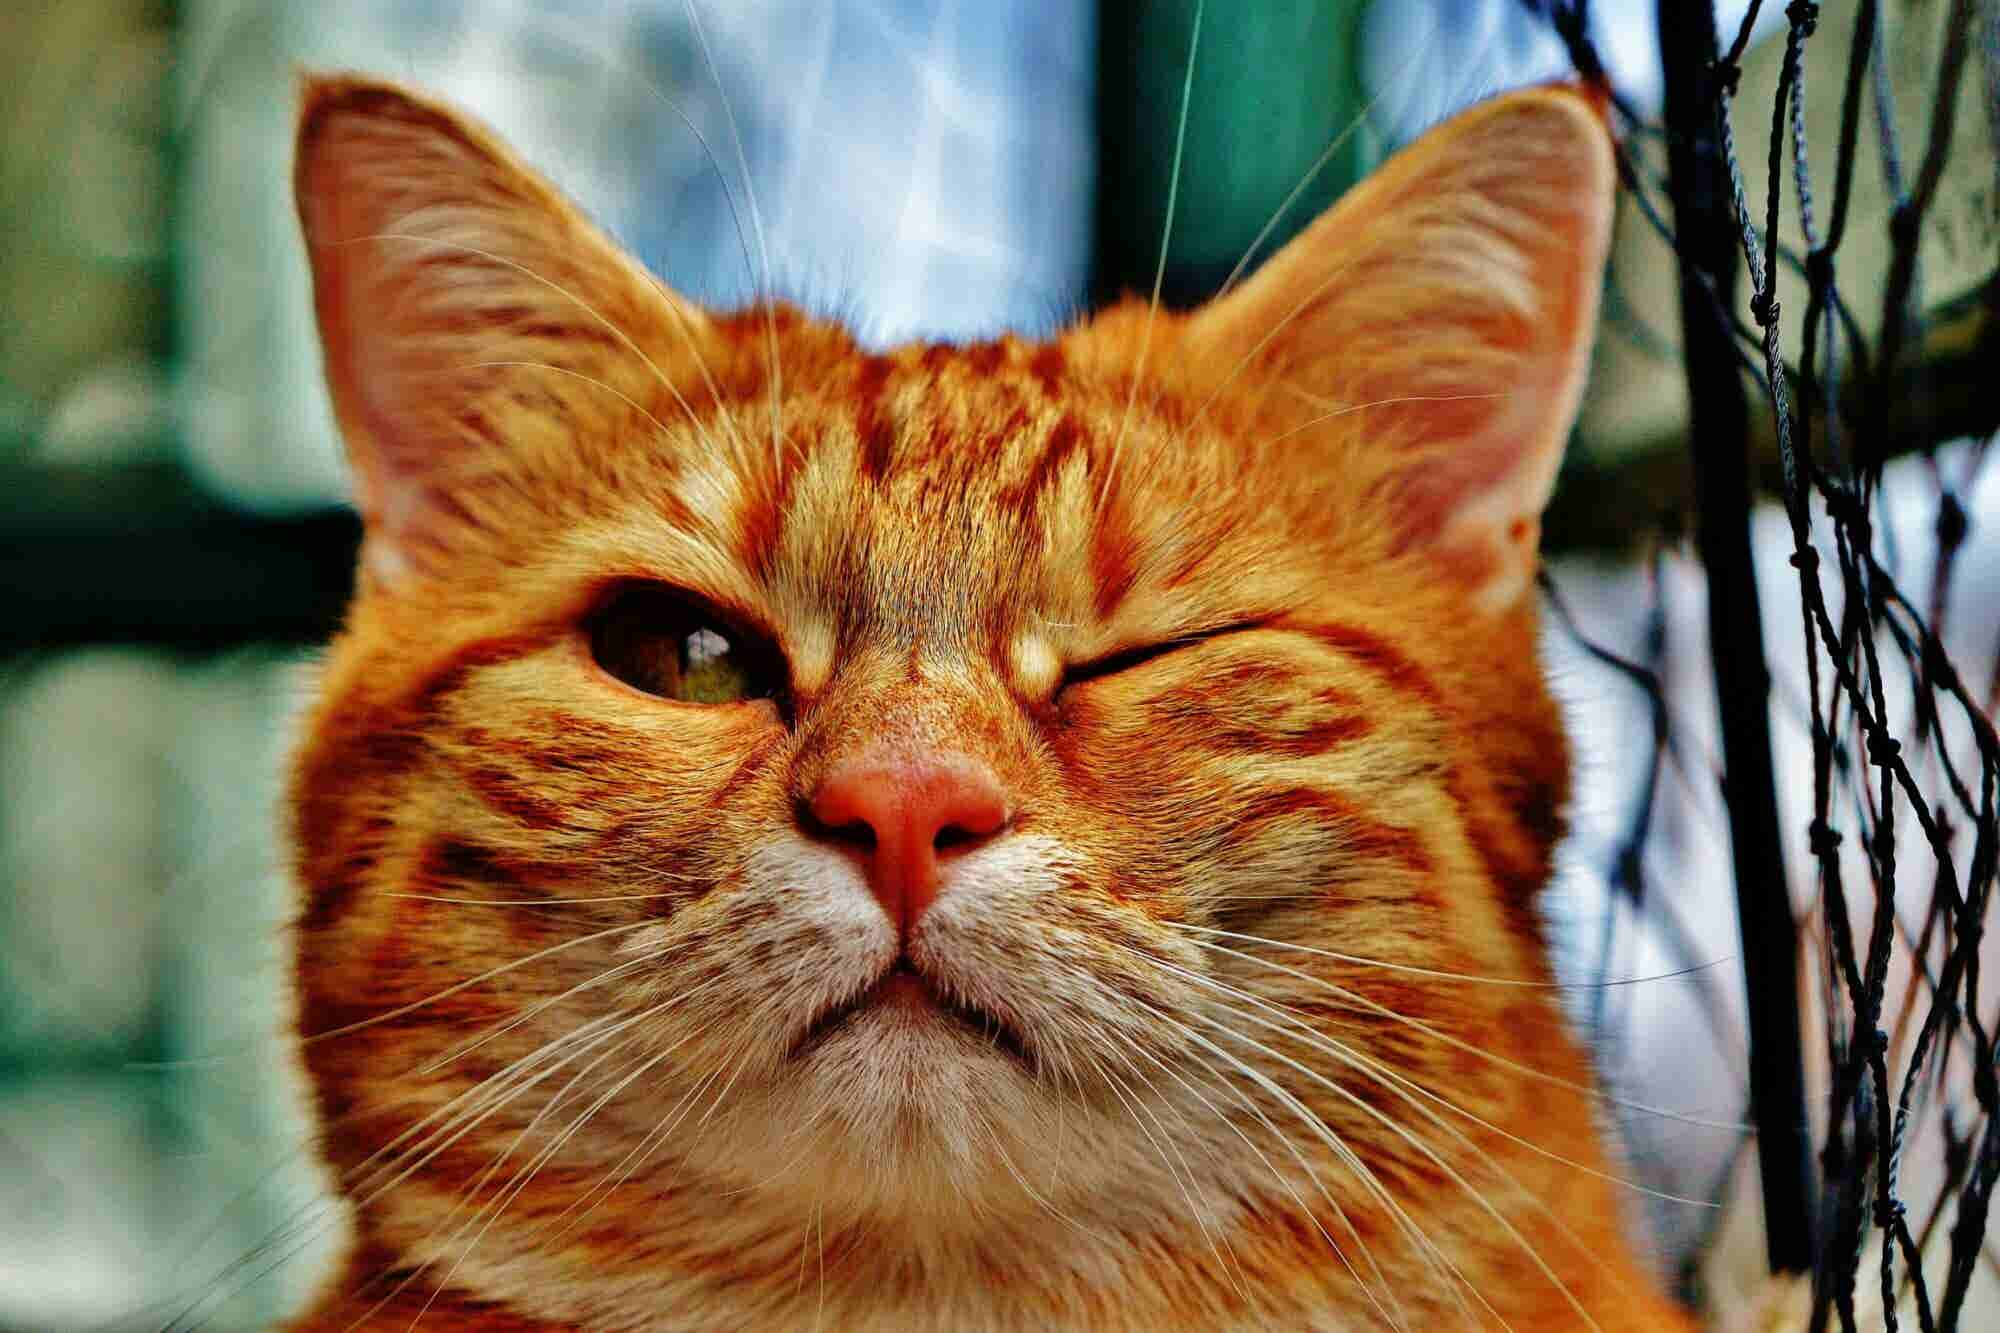 Want to Be an Entrepreneur? This Cat Parasite Might Help You